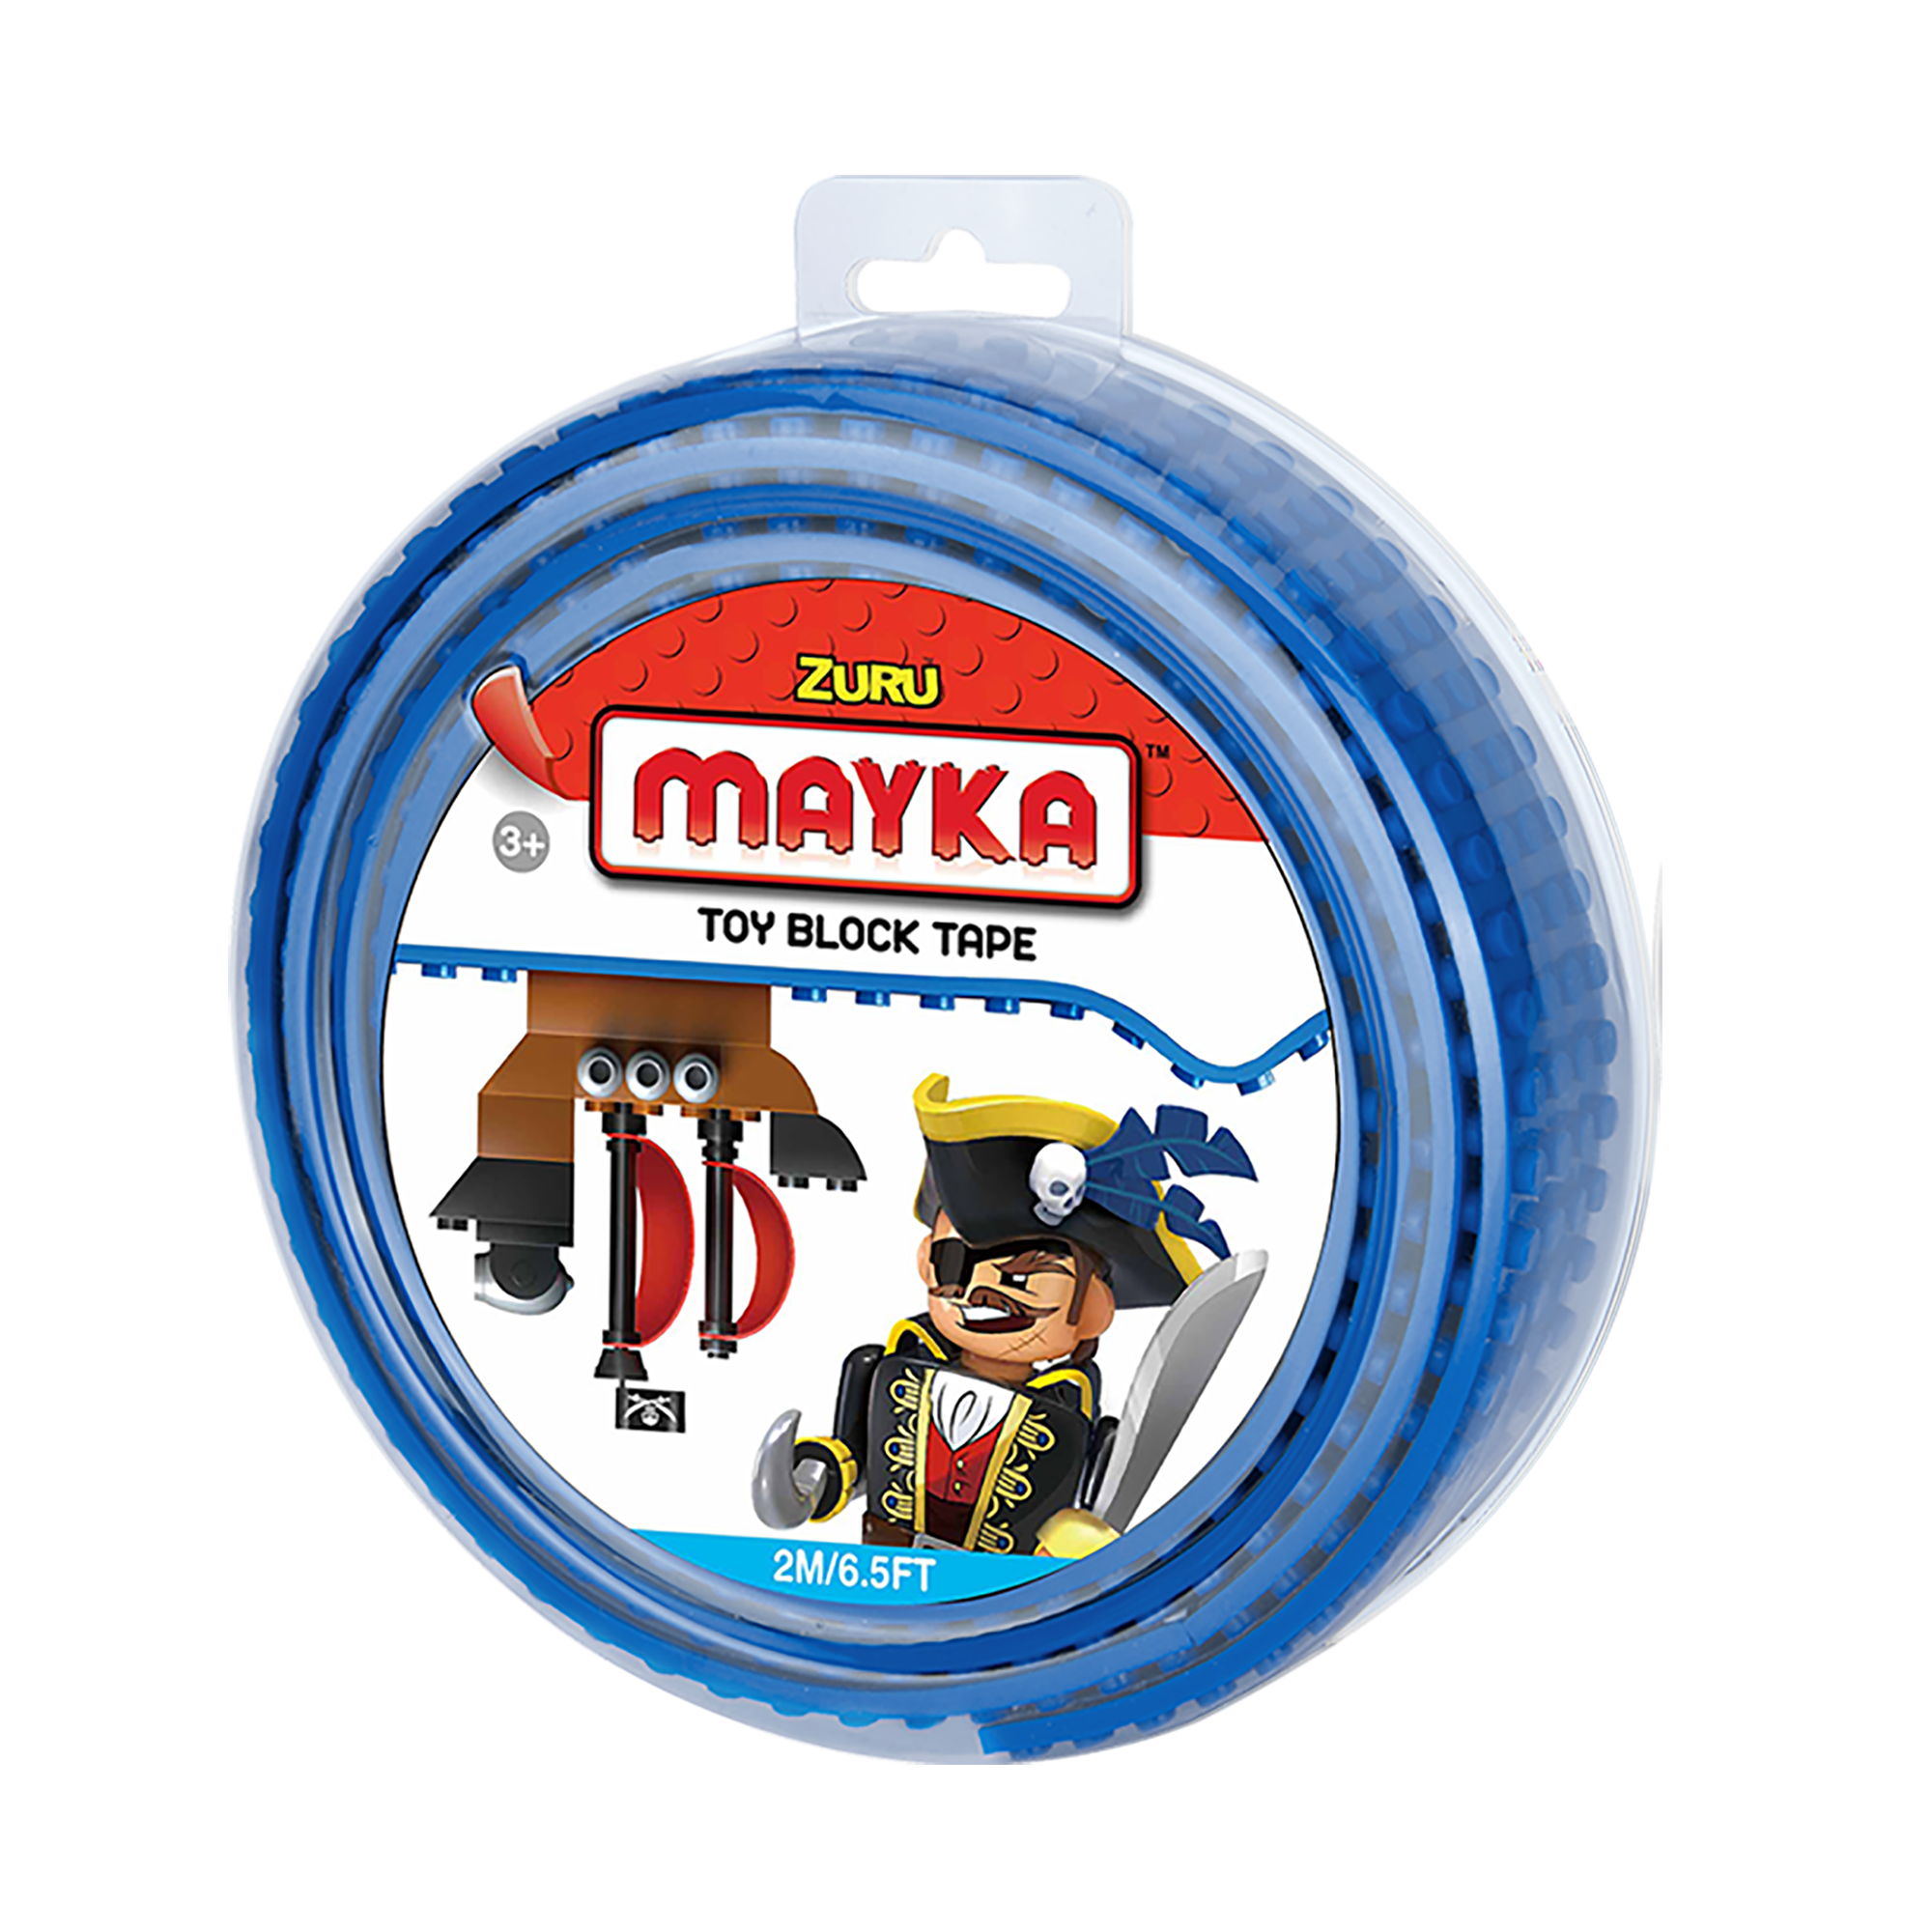 Mayka Toy Block Tape, 6.5ft 4-stud (Blue)